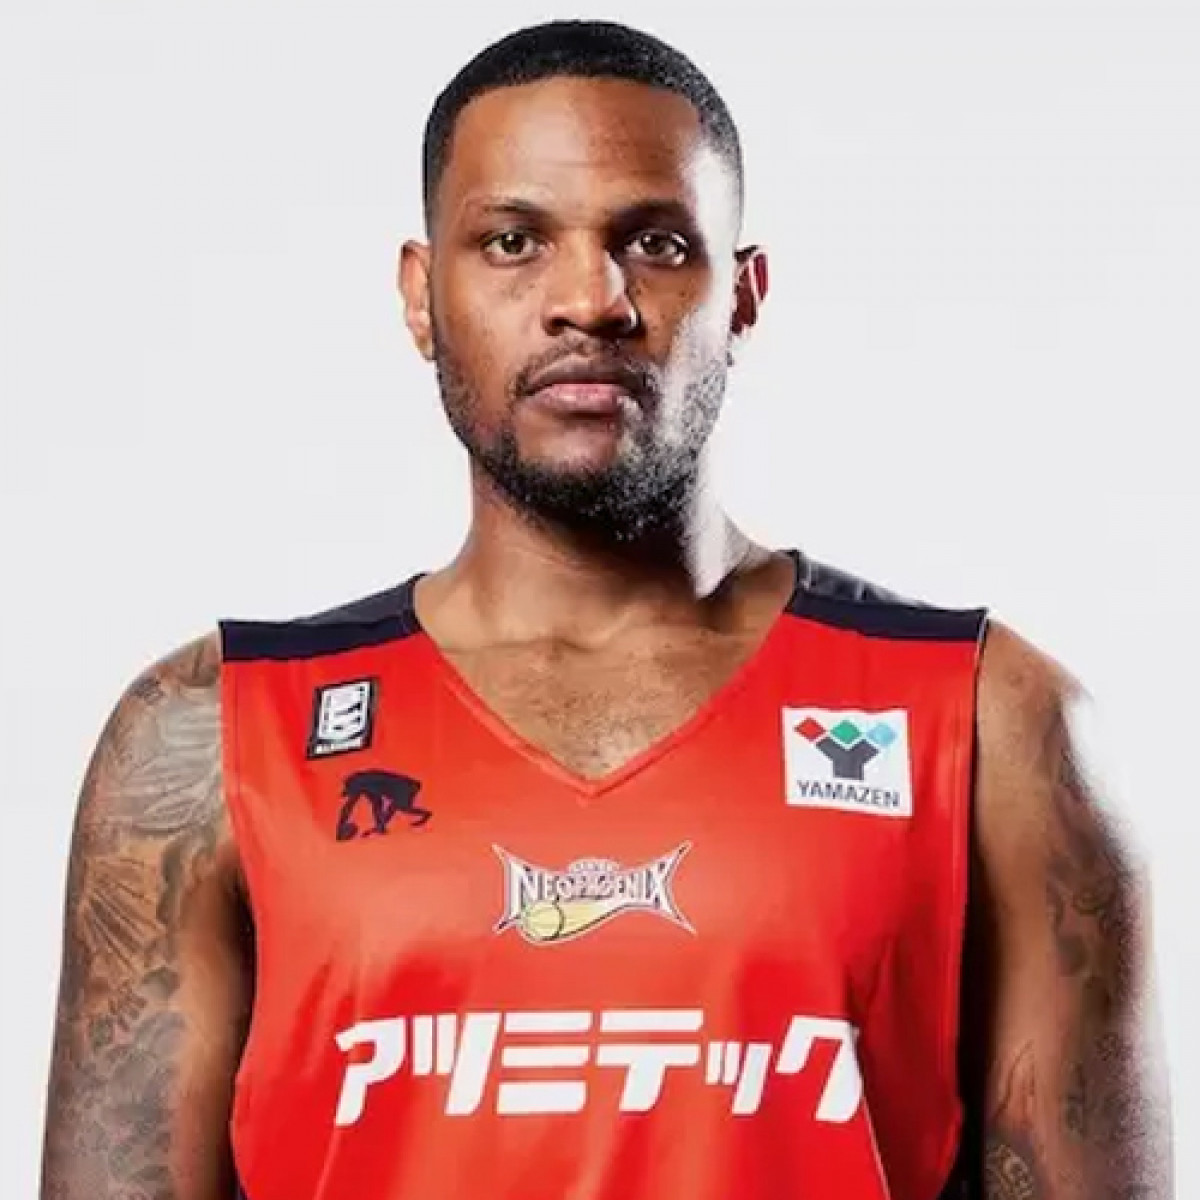 Photo of Devin Ebanks, 2019-2020 season